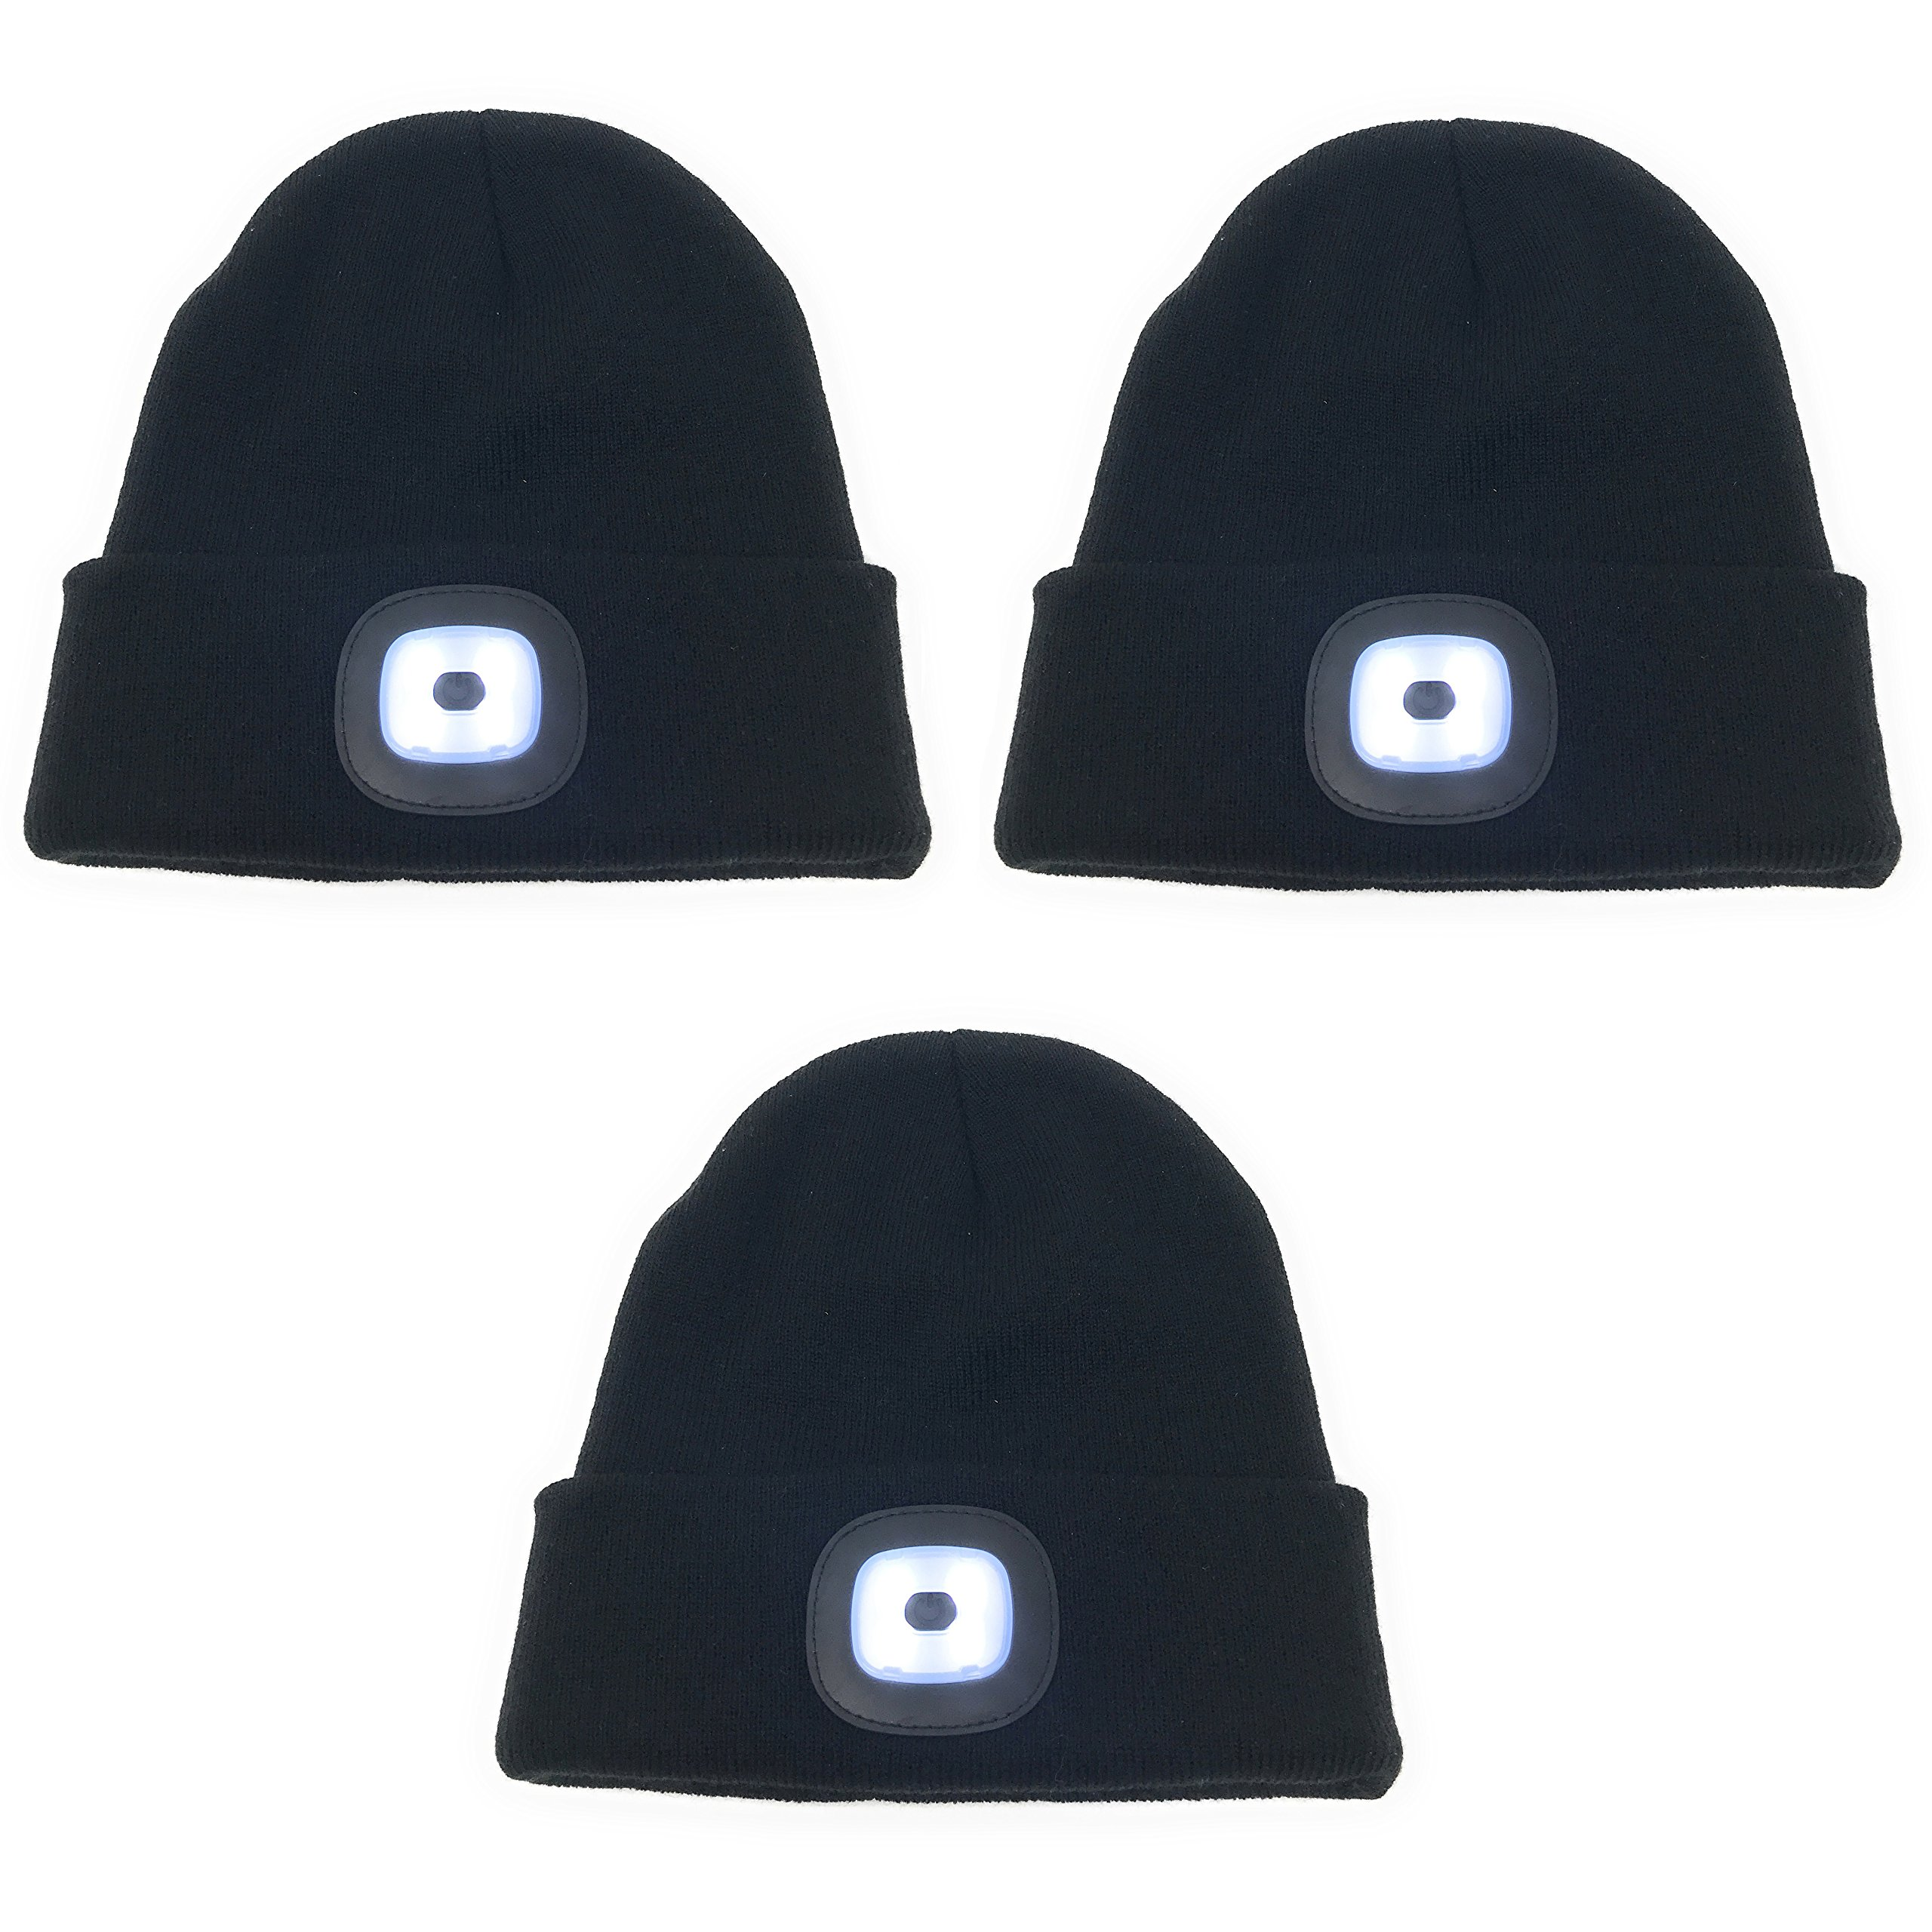 3-Pack Bulk LED Knit Beanie Stocking Caps / Camping Light / Flashlight - incl batteries - Perfect for skiing, running, hiking, camping, or around the house